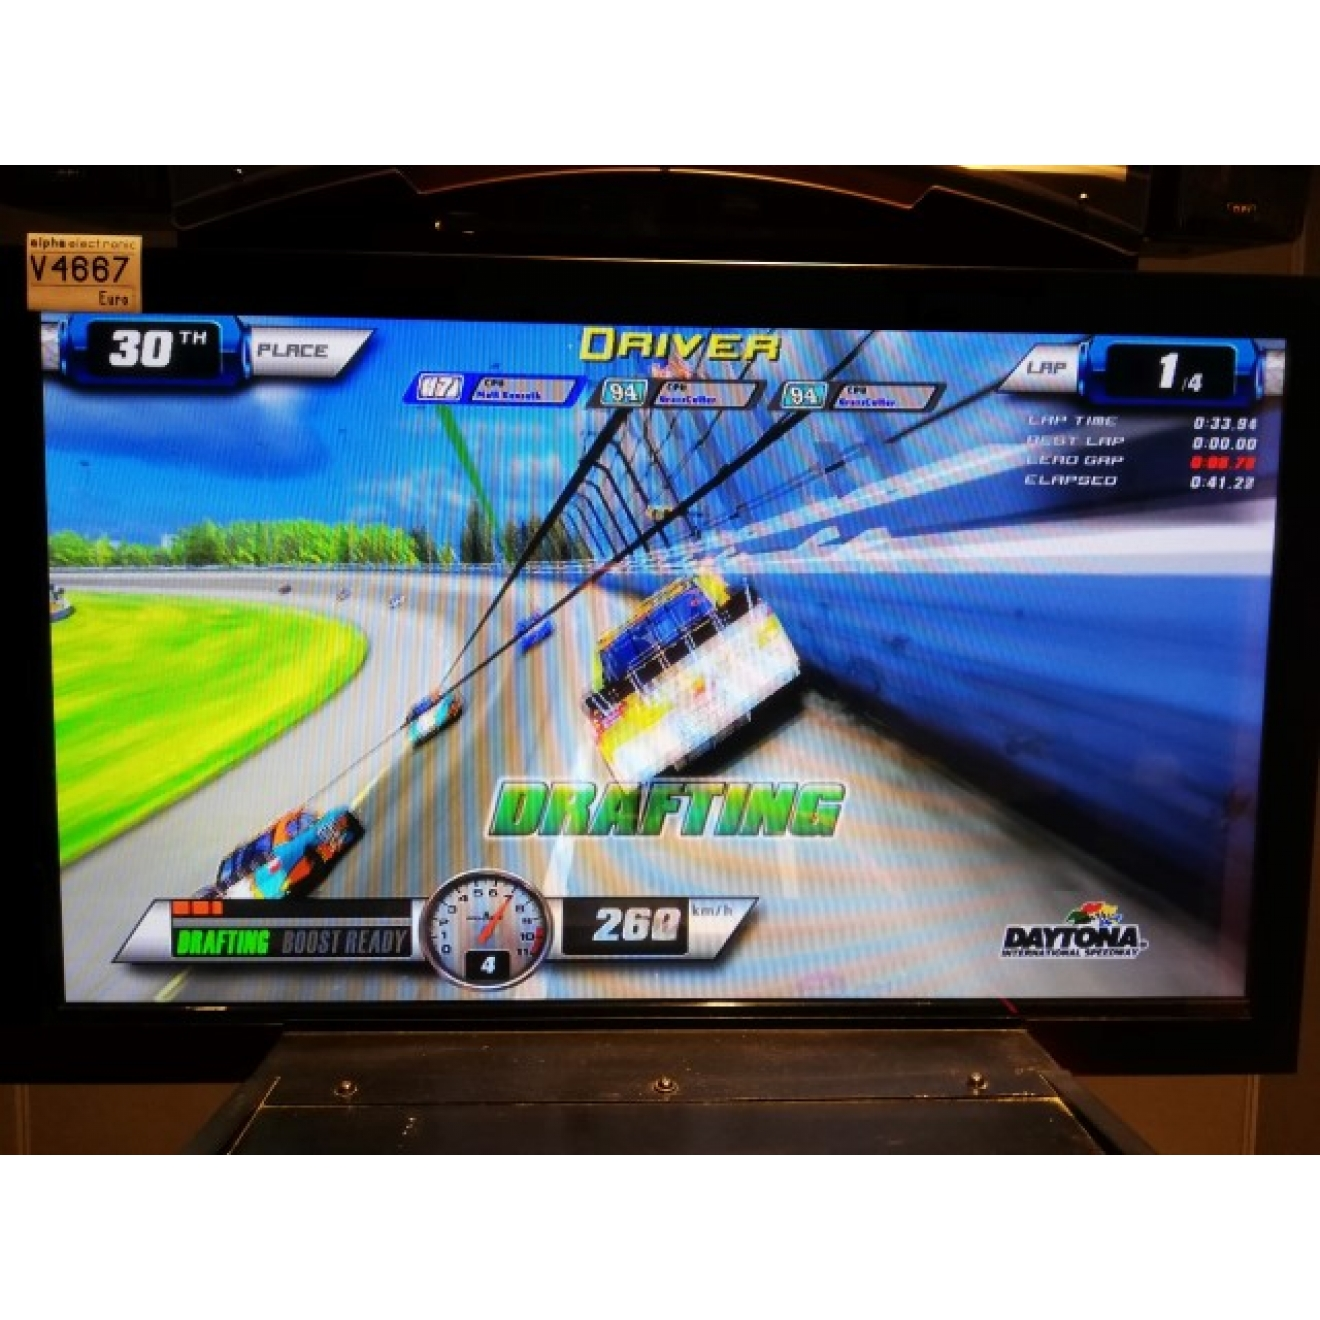 "NASCAR Team Racing 42"" DELUXE, Global VR, Arcade Fahrsimulator, V4667"